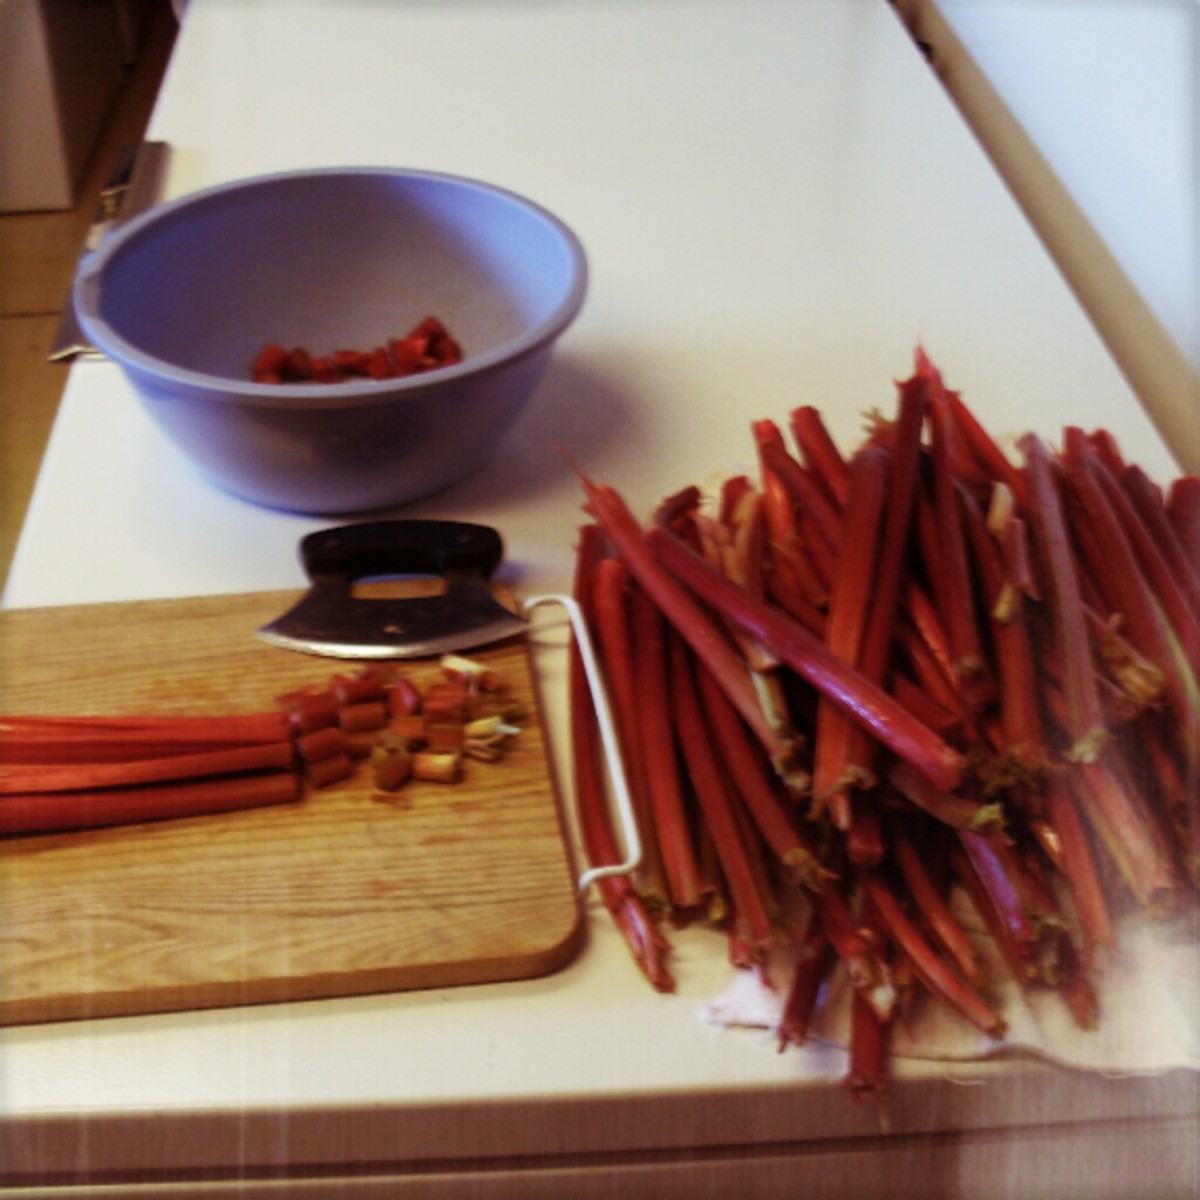 "Rhubarb is largely water and may usually be chopped coursely, as it cooks down a lot. 1/2"" pieces are good for pies, 1/4"" for cakes or breads. Split thick stalks lengthwise, then lay 3 or 4 together, and chop. Peel only as necessary."